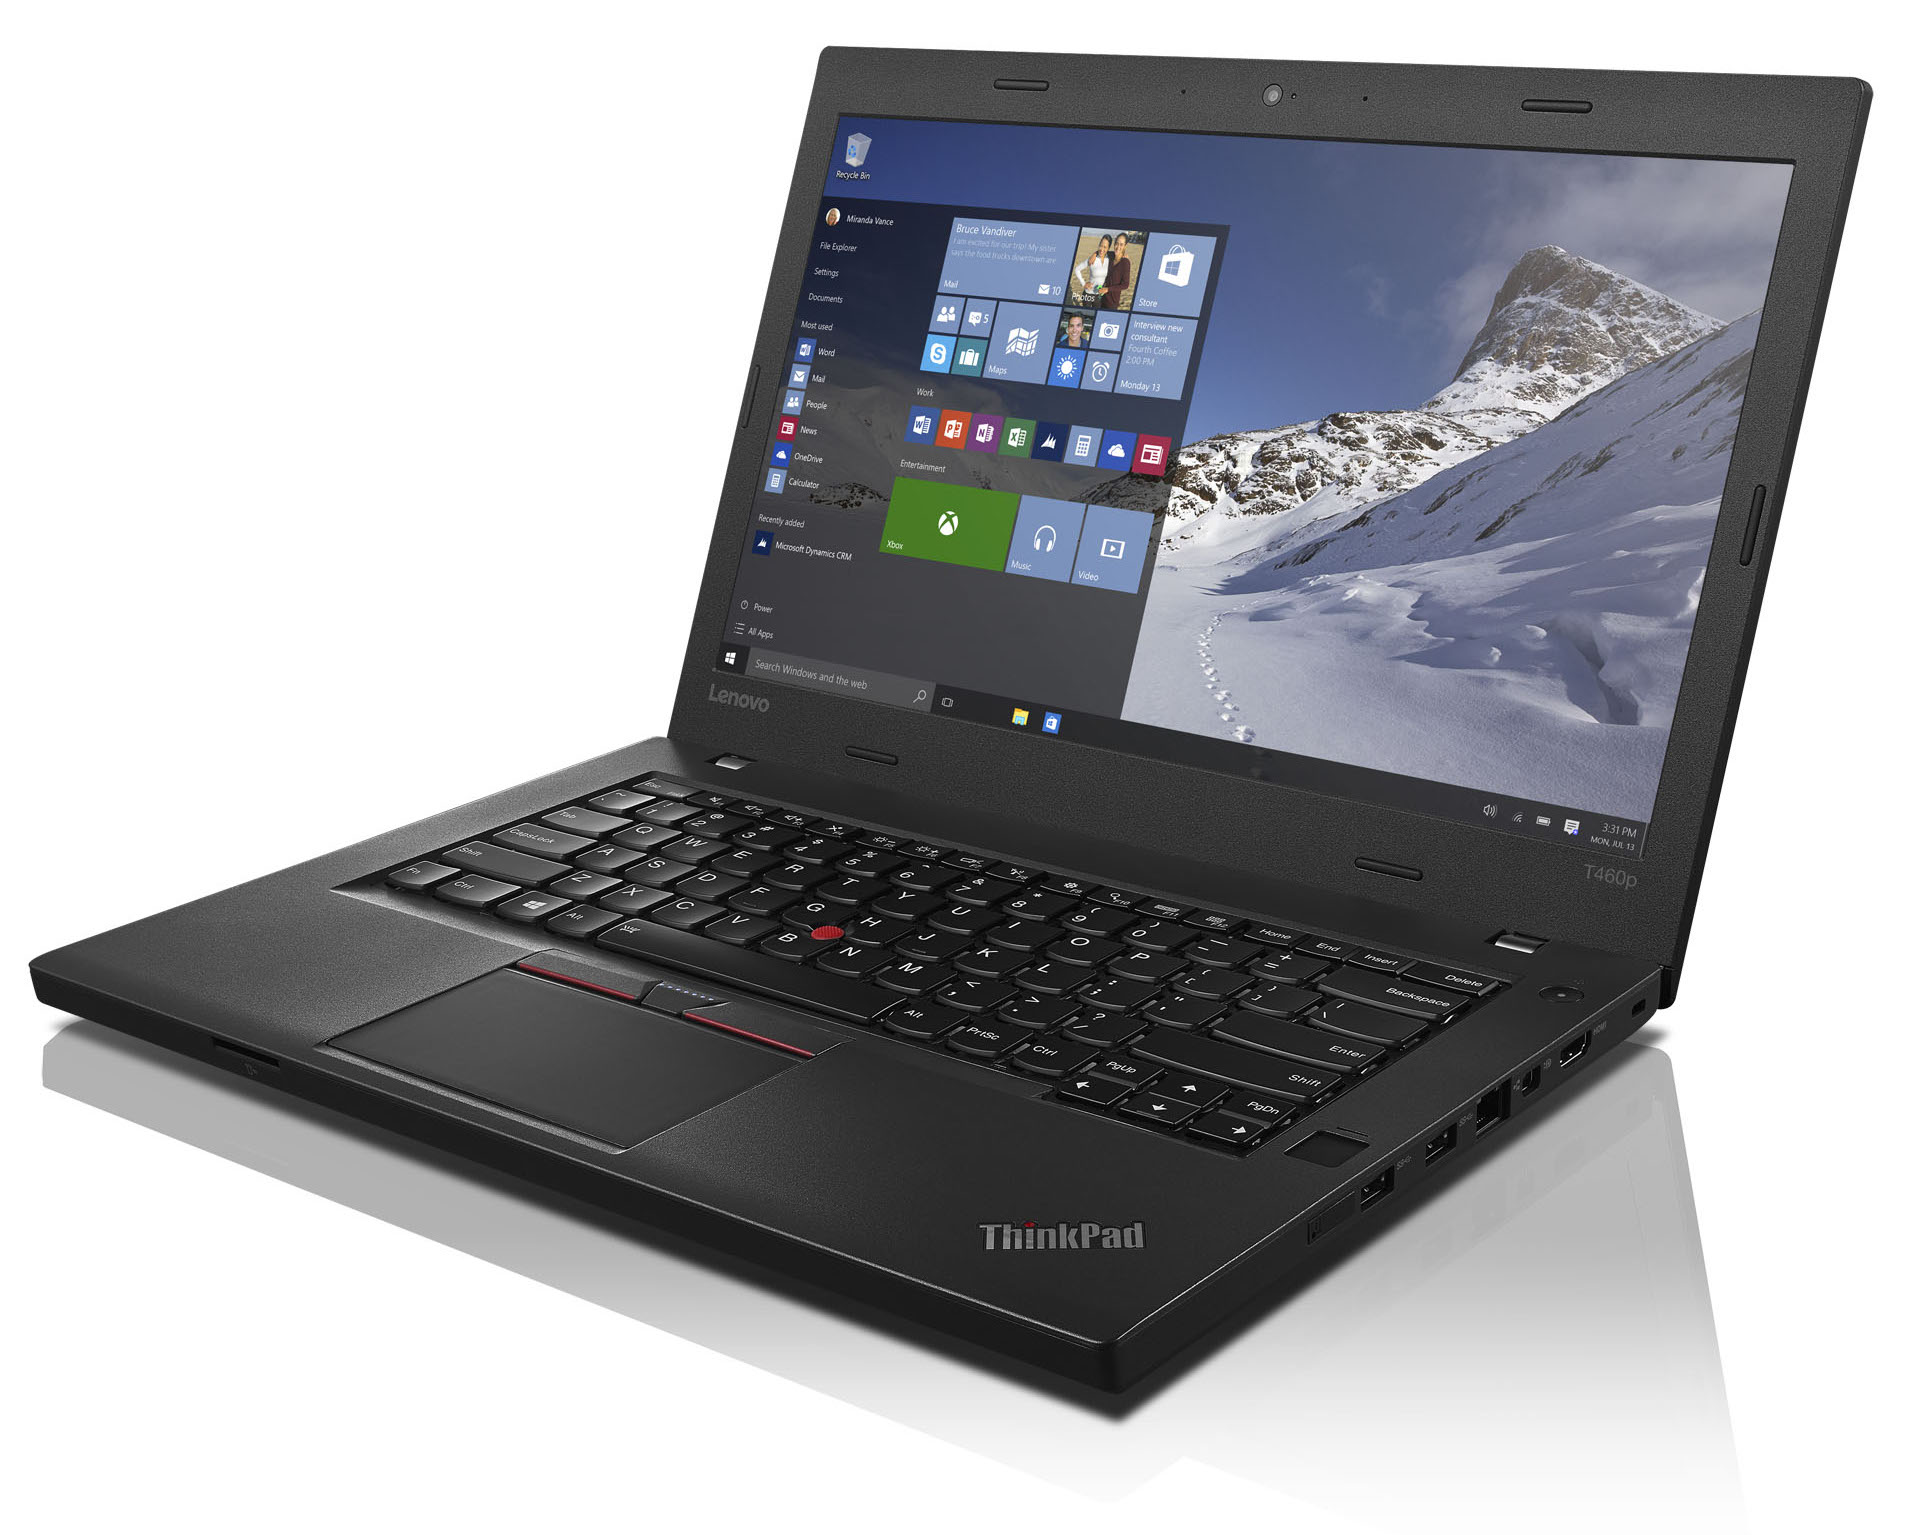 Lenovo-ThinkPad-T460p-001